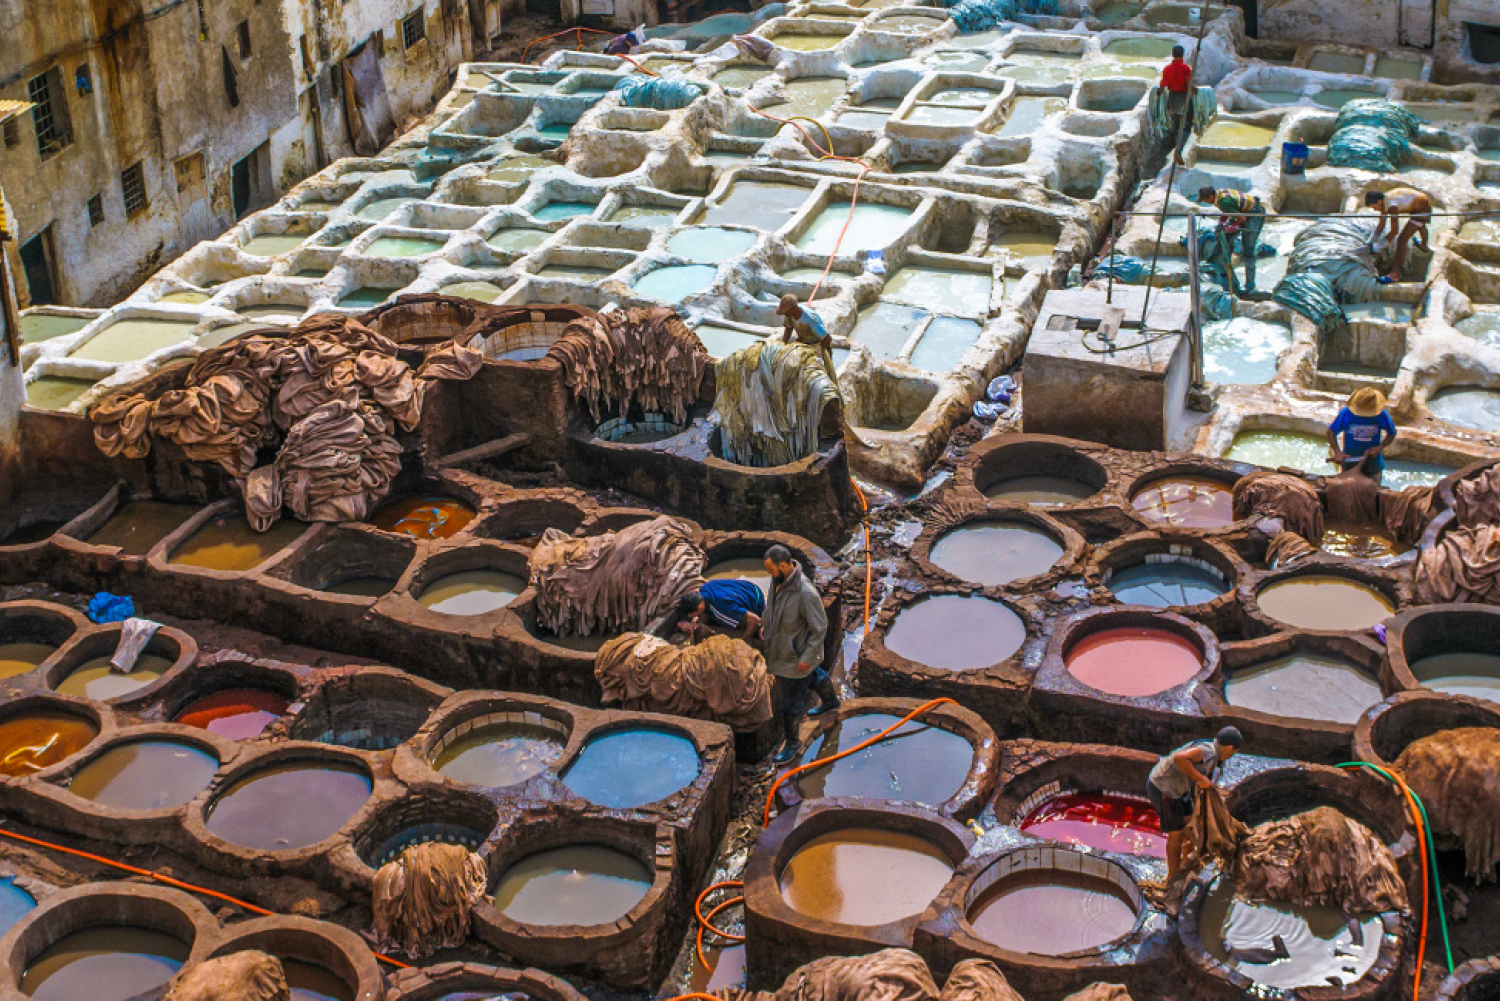 A leather tannery in Marrakech